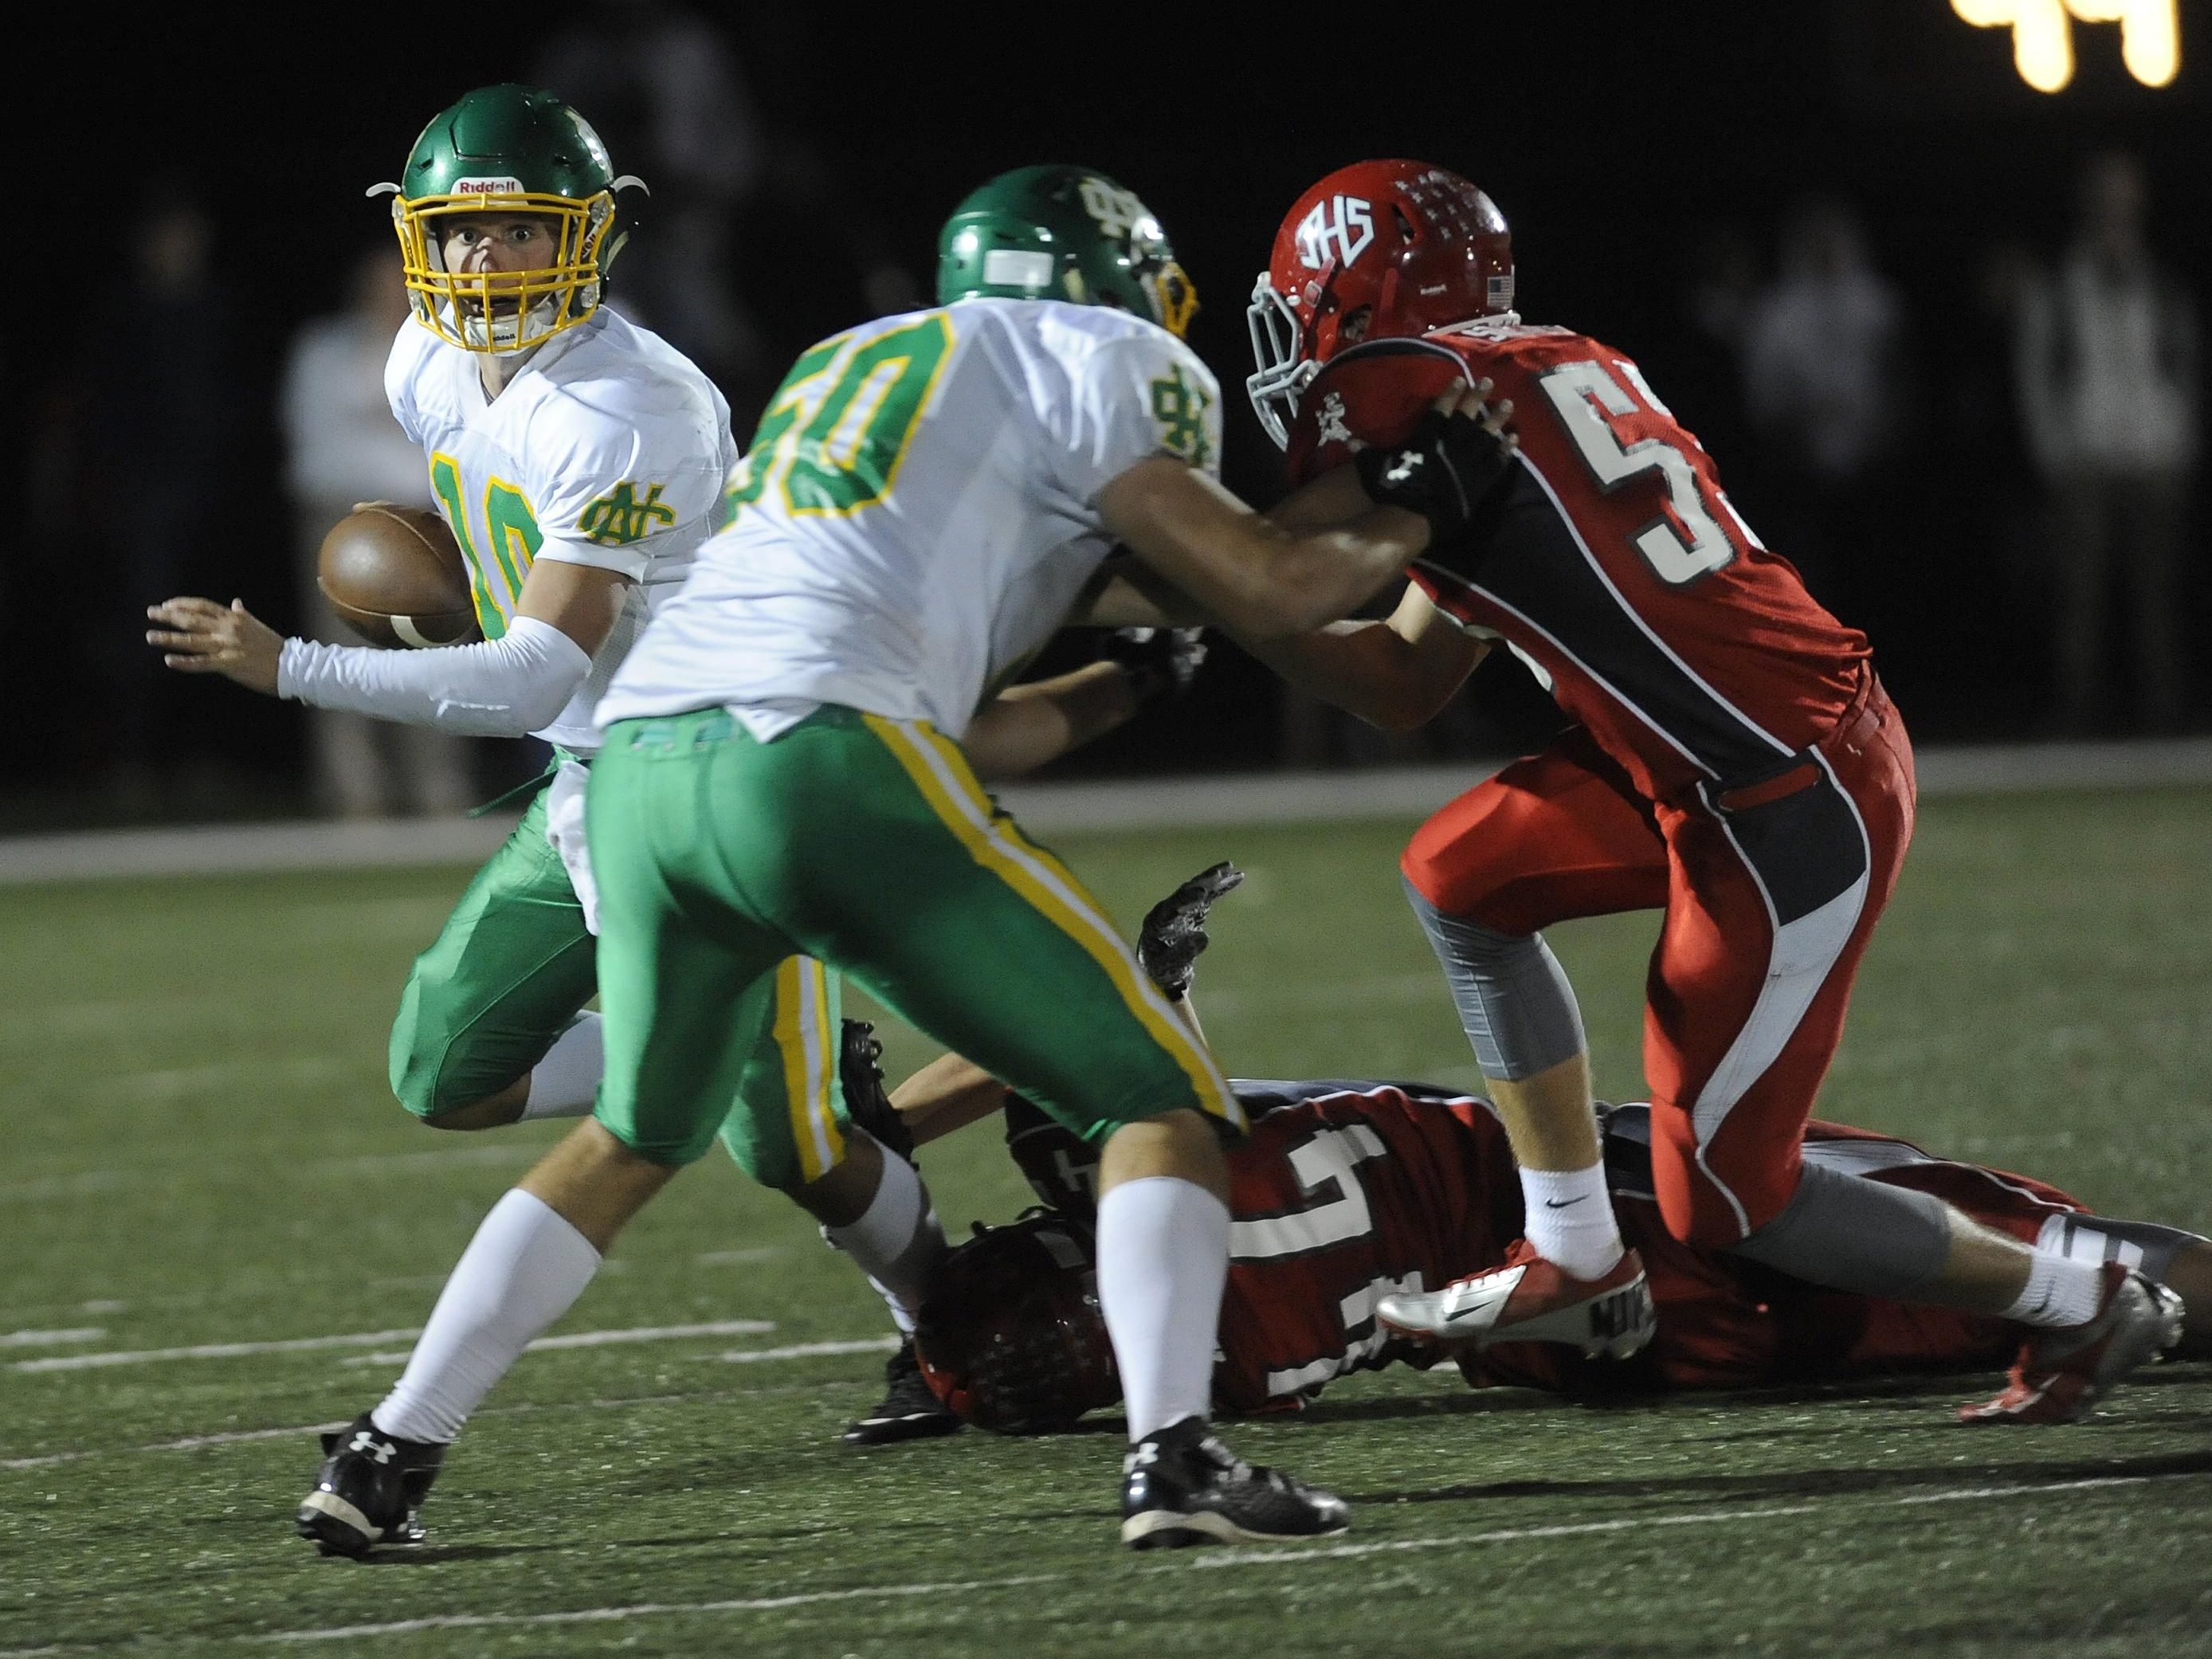 Newark Catholic's Nick Cavinee, front, blocks a Johnstown defender during a game this season.